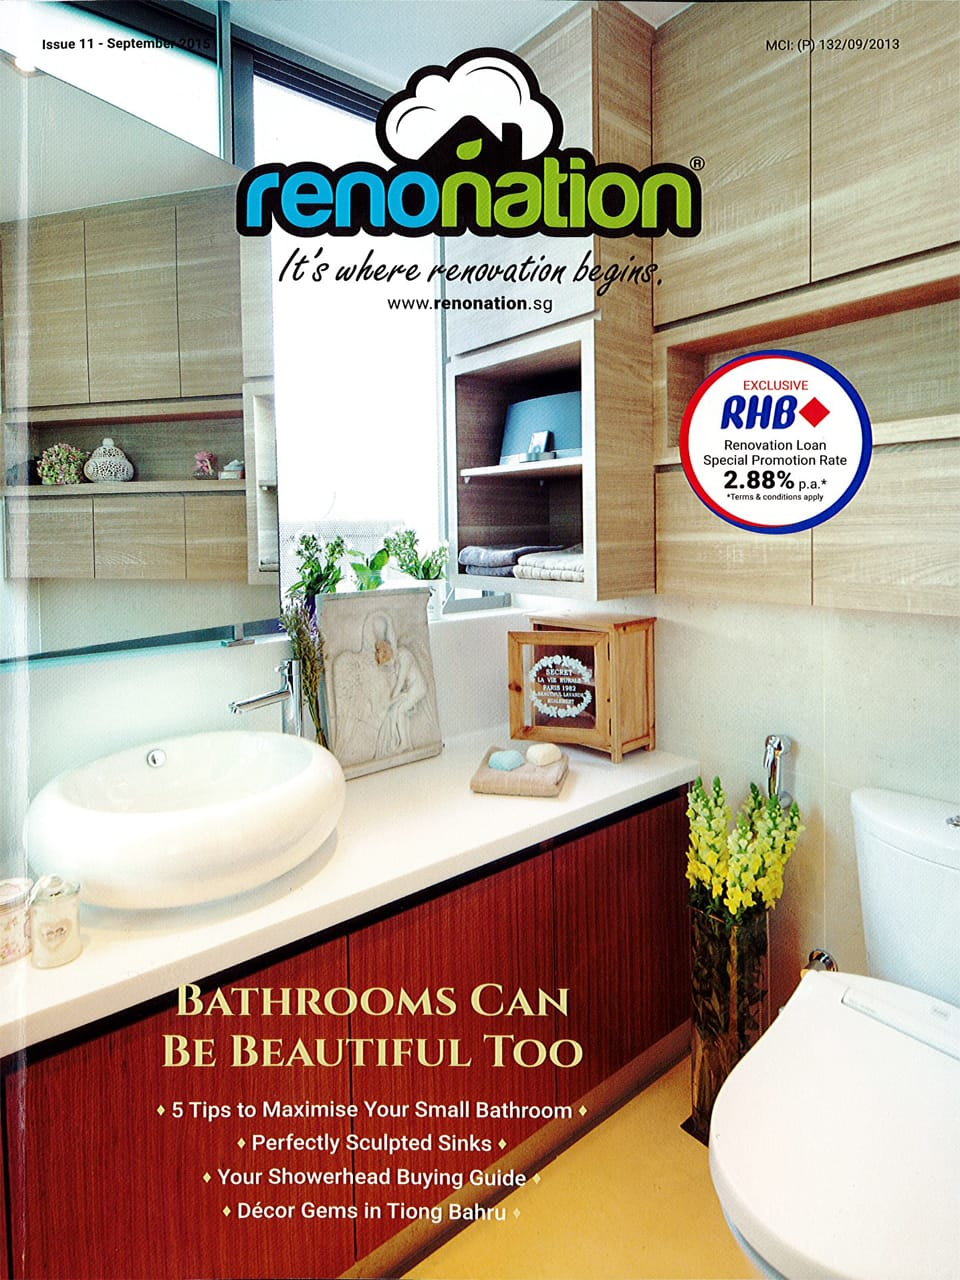 RenoNation - Issue 11 (September 2015)